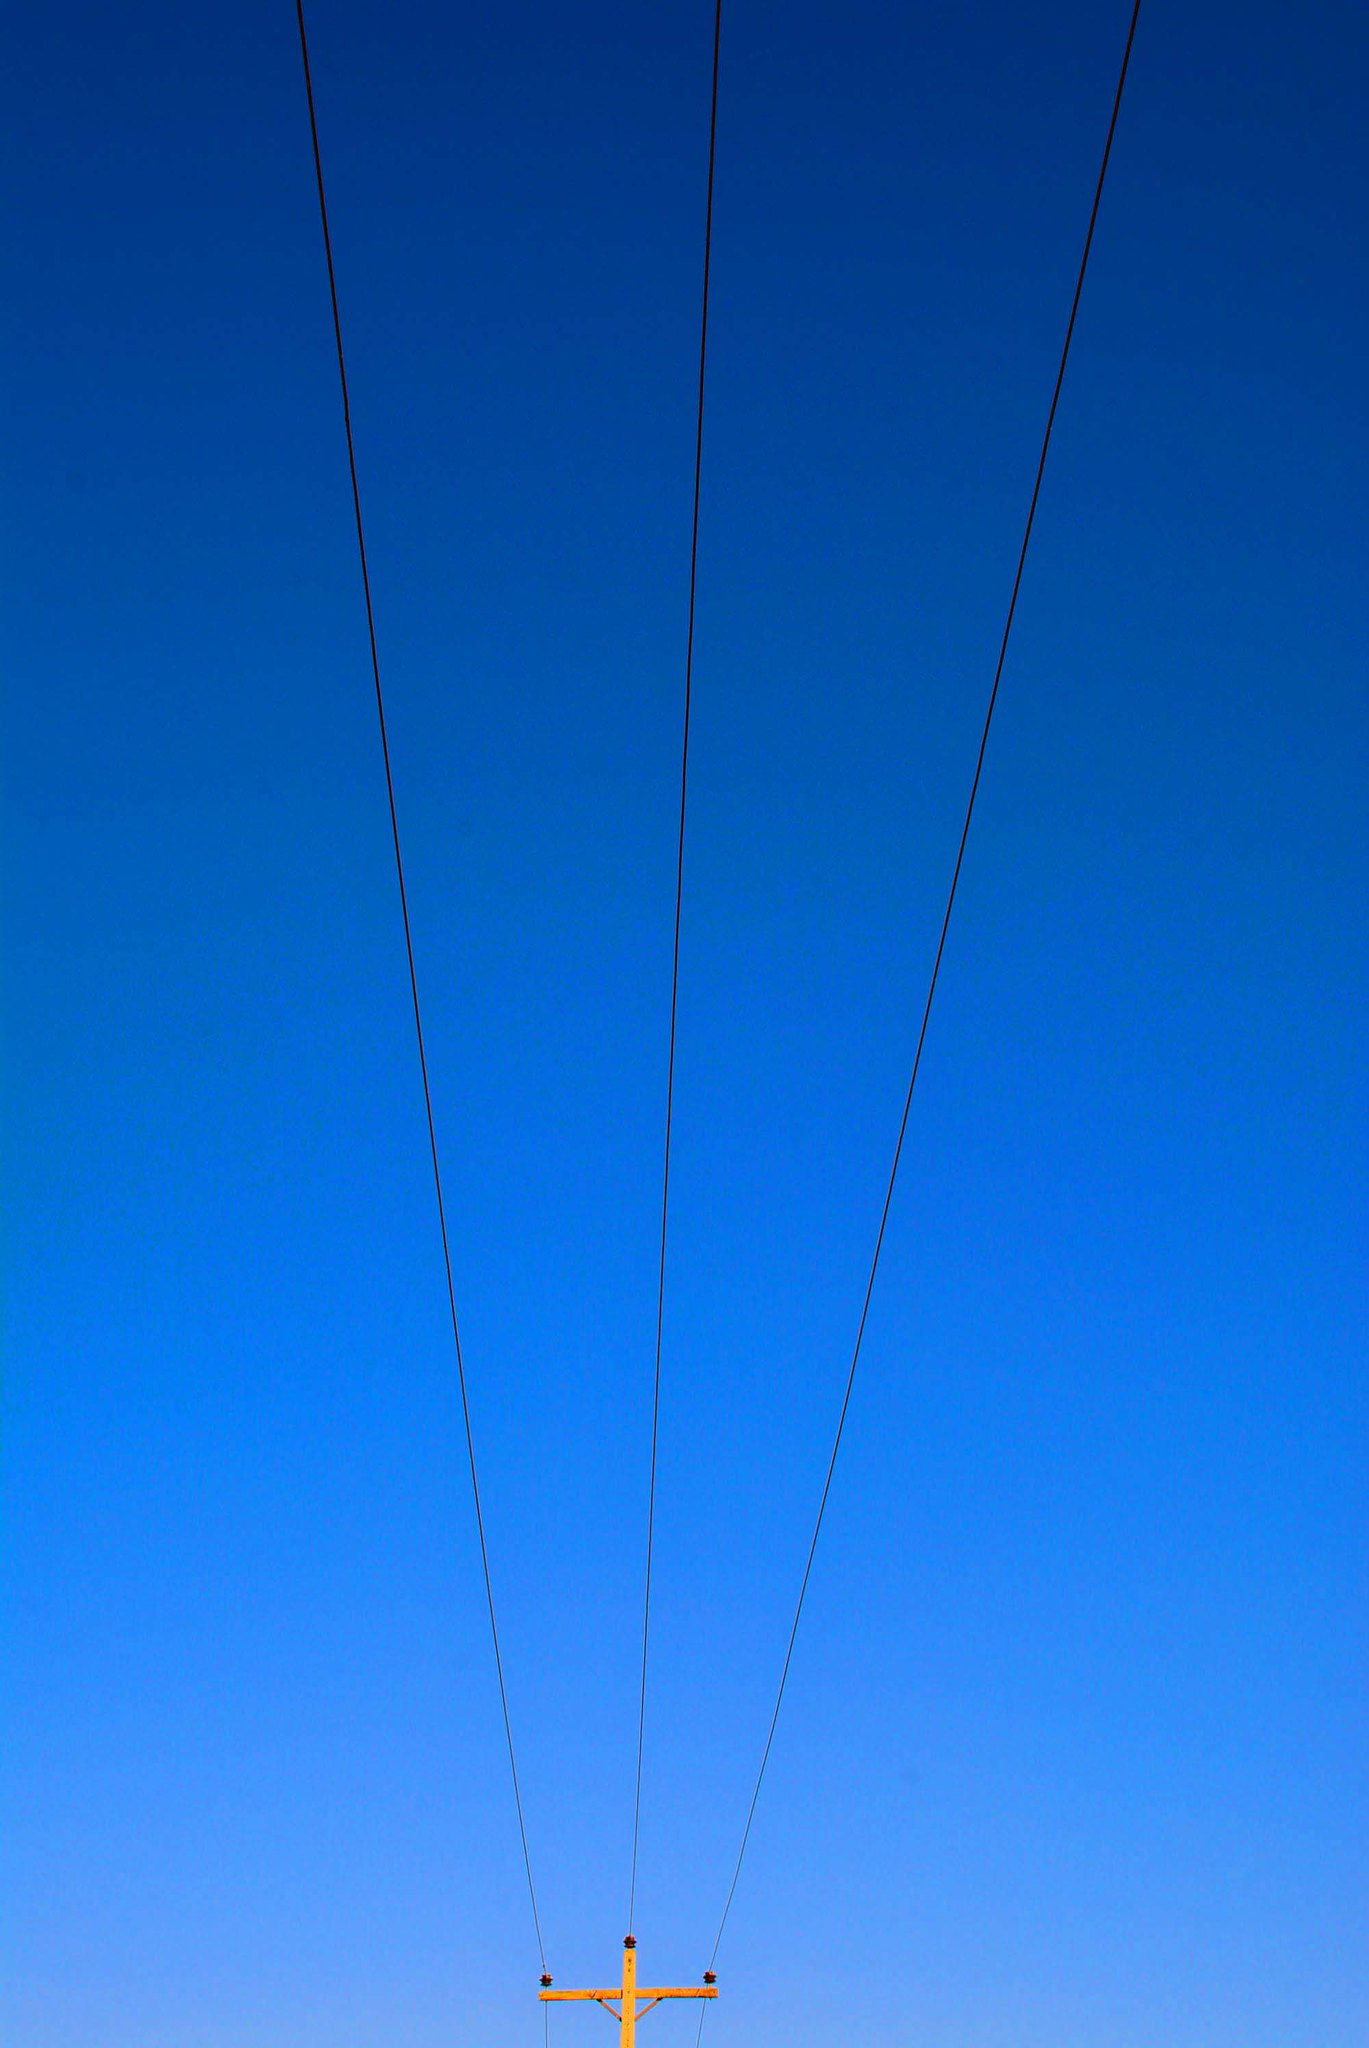 Electricity lines